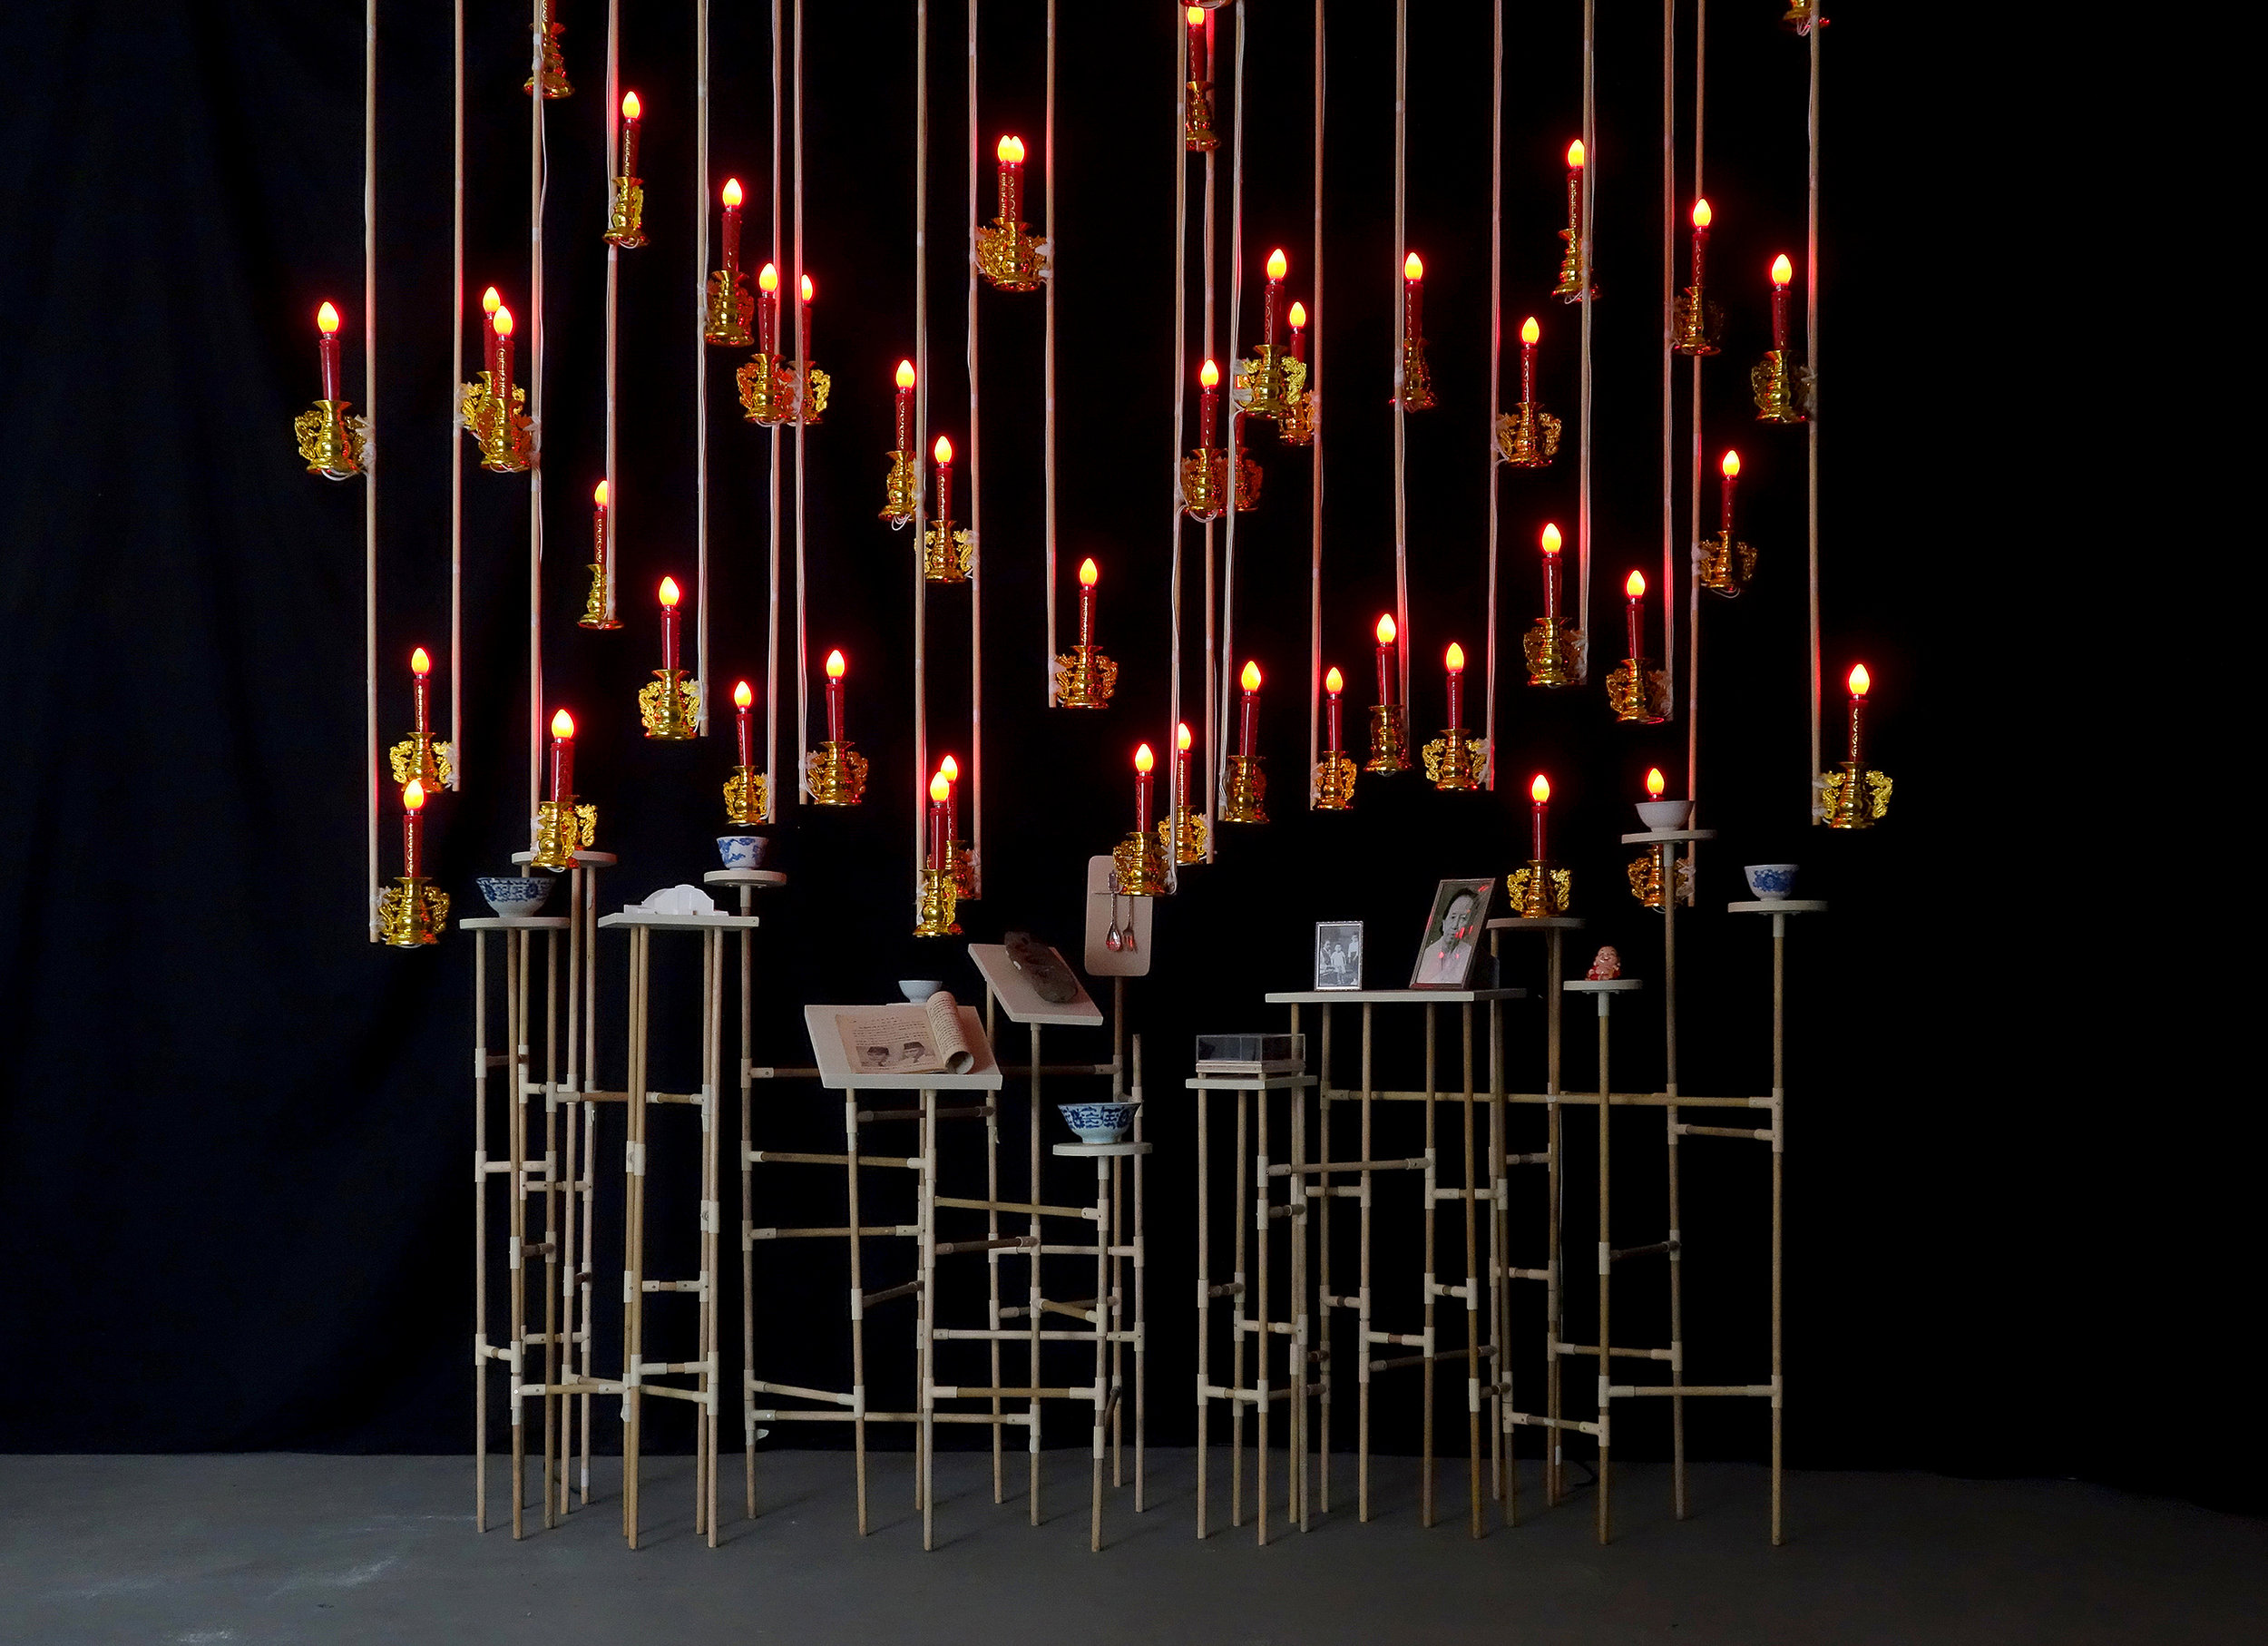 FX Harsono    Gazing on collective memory  2016 wood, found objects, books, ceramic bowls, wooden butter mould, wooden cookie mould, metal spoons, 3D digital prints, framed photographs and electric candle lights National Gallery of Australia, Canberra Purchased 2018 © FX Harsono